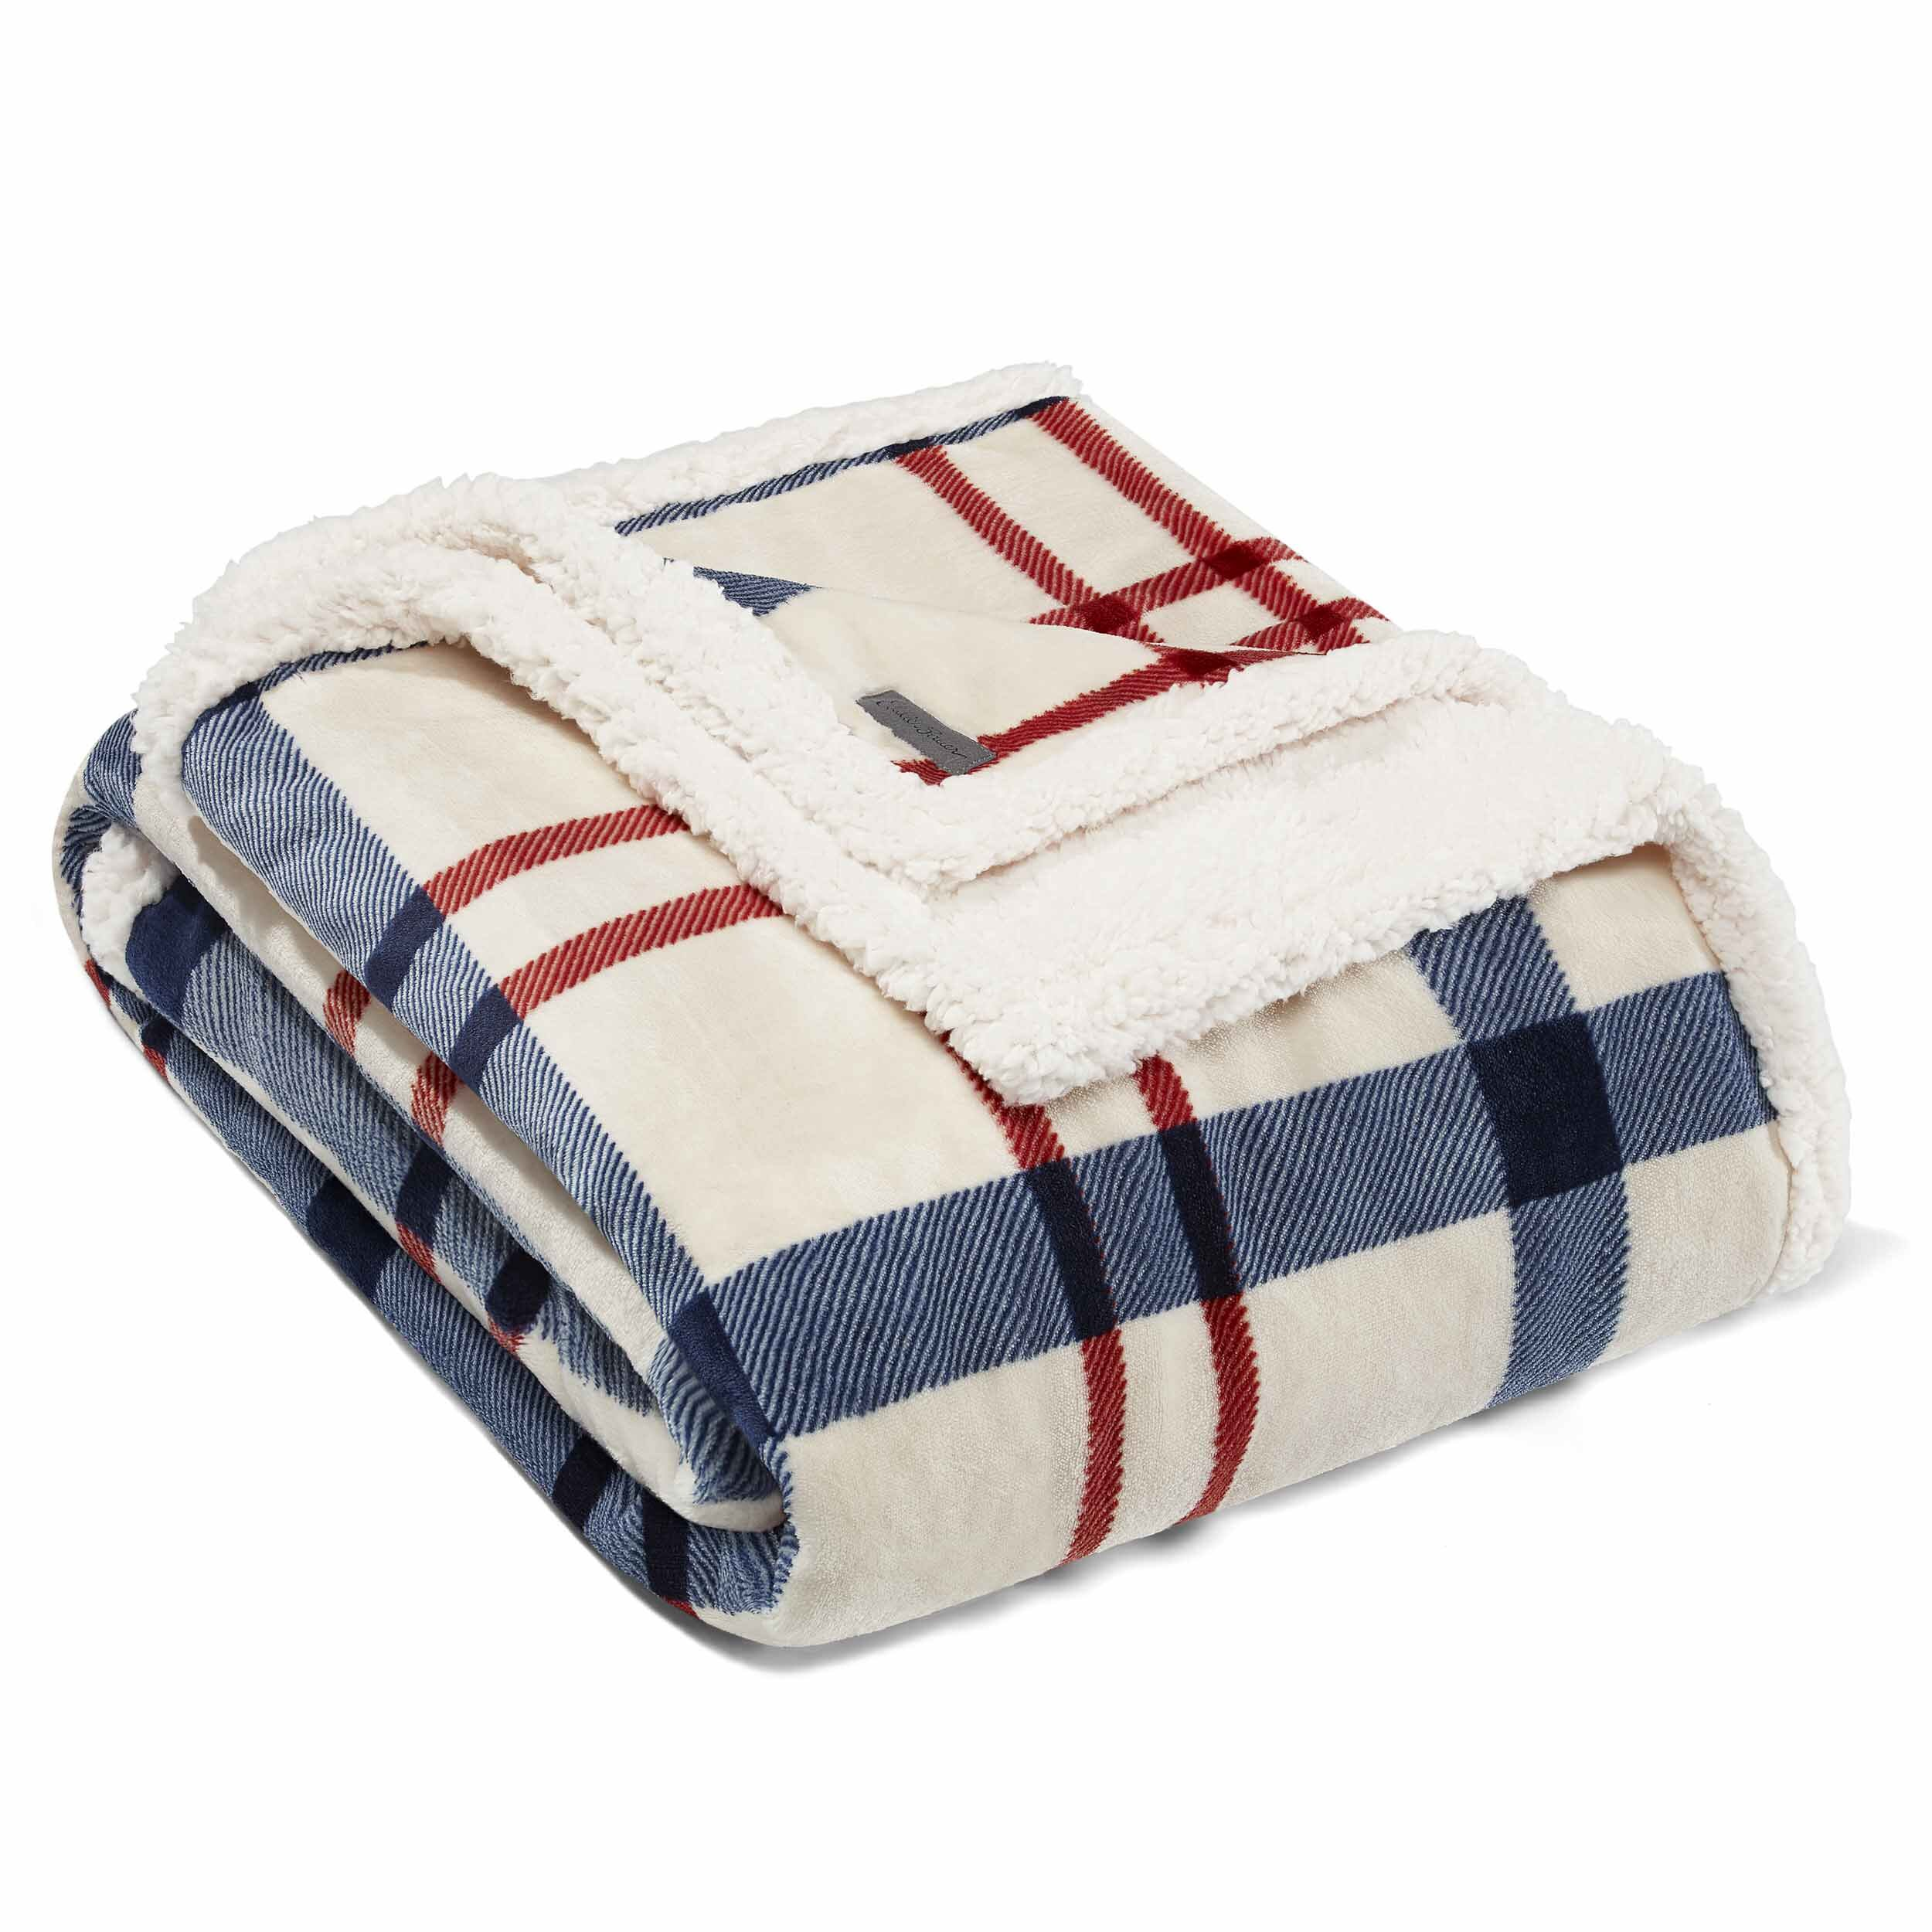 Brown Plaid Blankets Throws You Ll Love In 2021 Wayfair